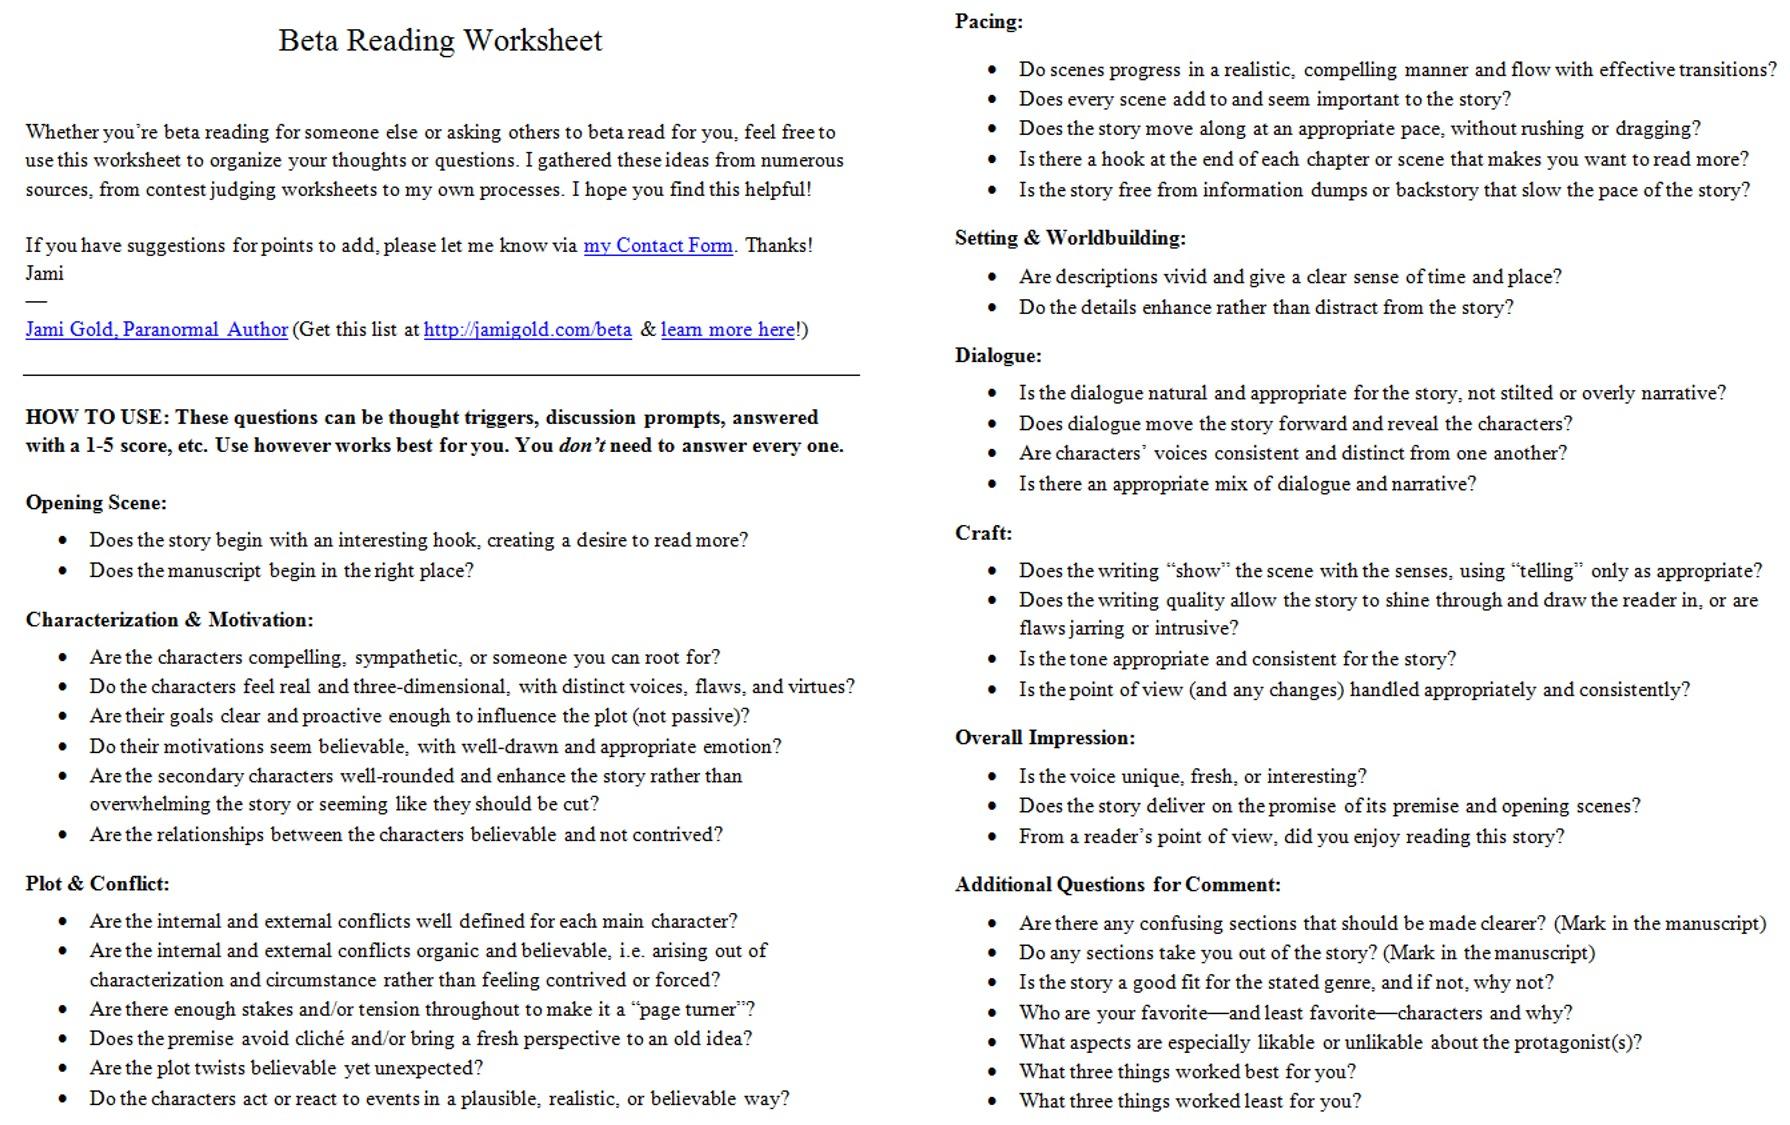 Aldiablosus  Unusual Worksheets For Writers  Jami Gold Paranormal Author With Interesting Screen Shot Of The Twopage Beta Reading Worksheet With Nice Chemistry Worksheet Answer Key Also Subtracting Fractions With Borrowing Worksheets In Addition Th Grade Math Worksheets Algebra And Relative Clause Worksheet As Well As Adjective Worksheets St Grade Additionally Mathematical Properties Worksheet From Jamigoldcom With Aldiablosus  Interesting Worksheets For Writers  Jami Gold Paranormal Author With Nice Screen Shot Of The Twopage Beta Reading Worksheet And Unusual Chemistry Worksheet Answer Key Also Subtracting Fractions With Borrowing Worksheets In Addition Th Grade Math Worksheets Algebra From Jamigoldcom